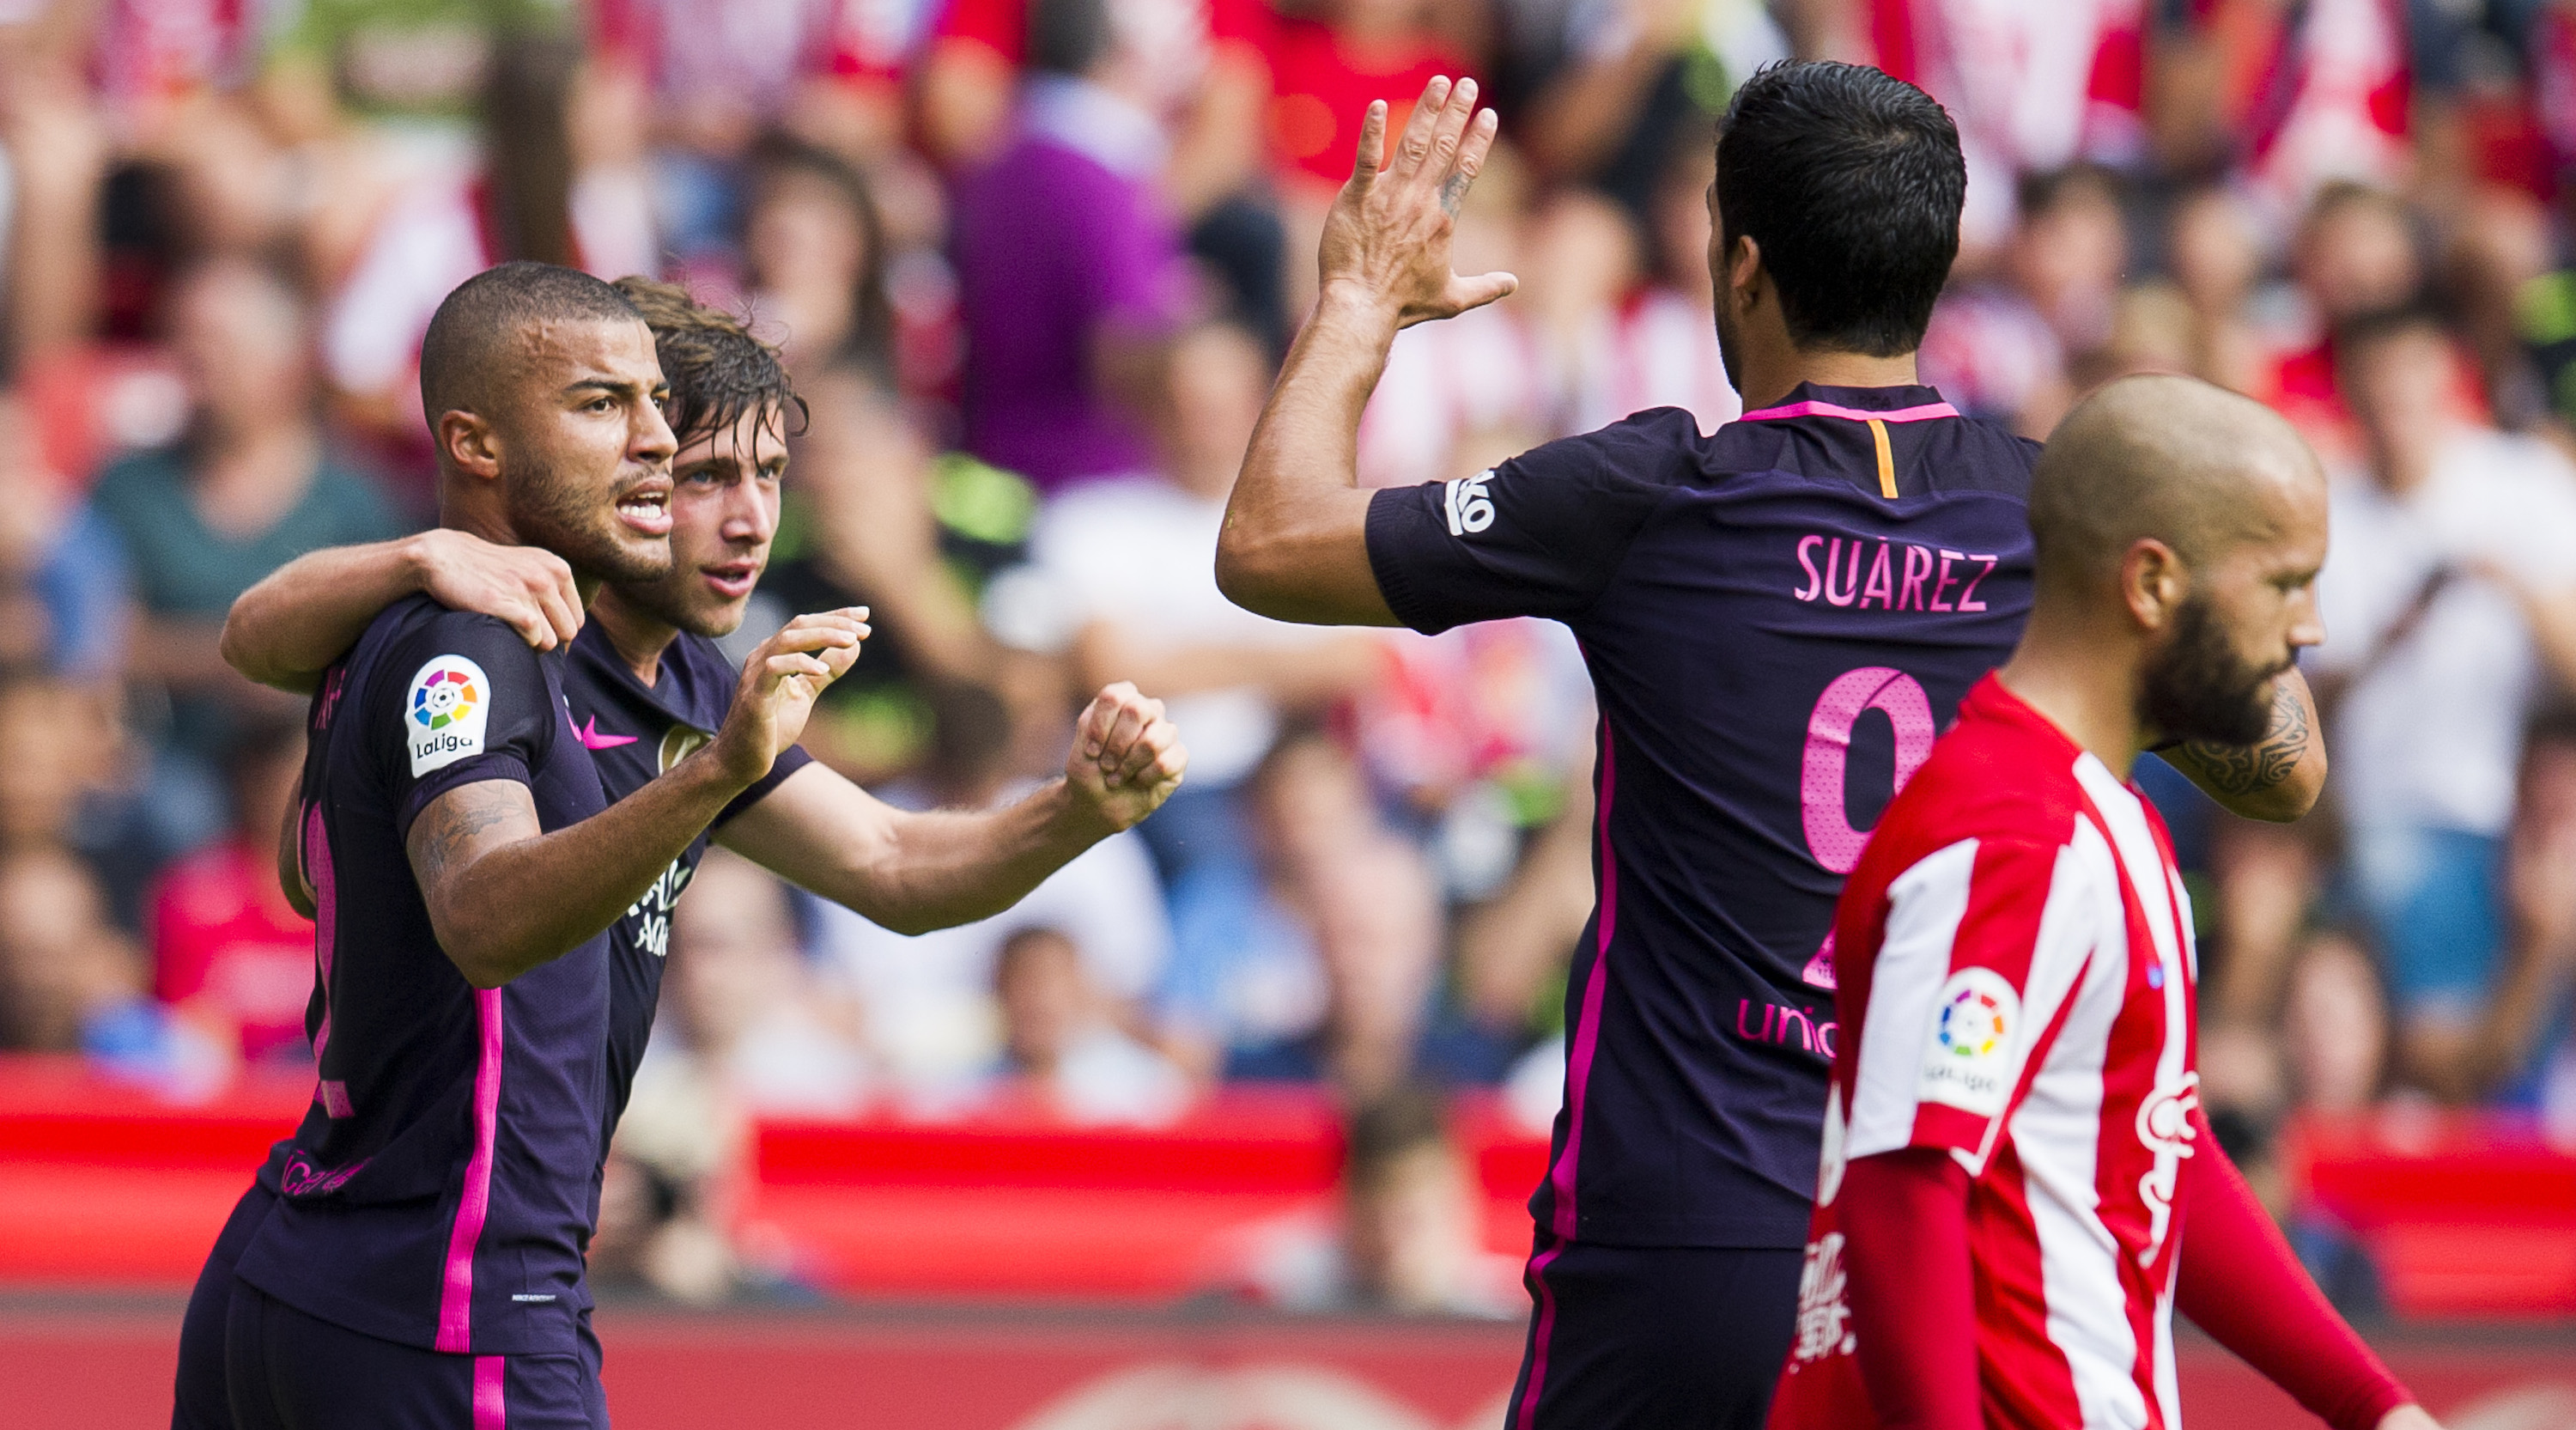 GIJON, SPAIN - SEPTEMBER 24: Rafinha of FC Barcelona celebrates with his teammates Luis Suarez of FC Barcelona after scoring his team's second goal during the La Liga match between Real Sporting de Gijon and FC Barcelona at Estadio El Molinon on September 24, 2016 in Gijon, Spain. (Photo by Juan Manuel Serrano Arce/Getty Images)